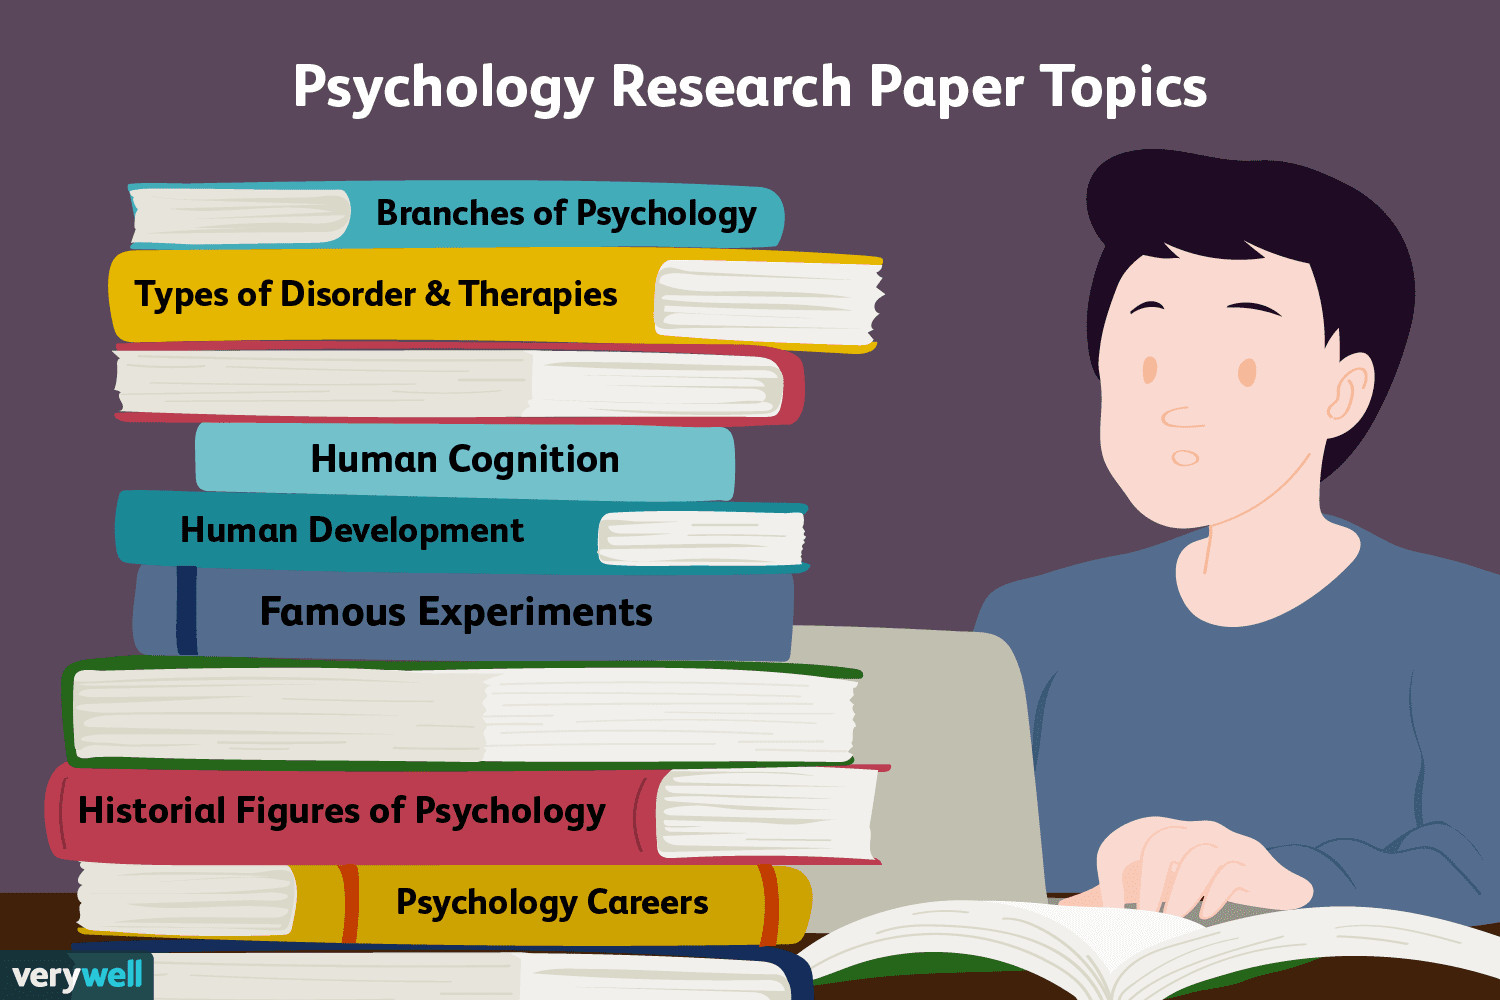 011 Biology Research Paper Ideas Example New Psychology Topics Great Beautiful Marine Topic Full